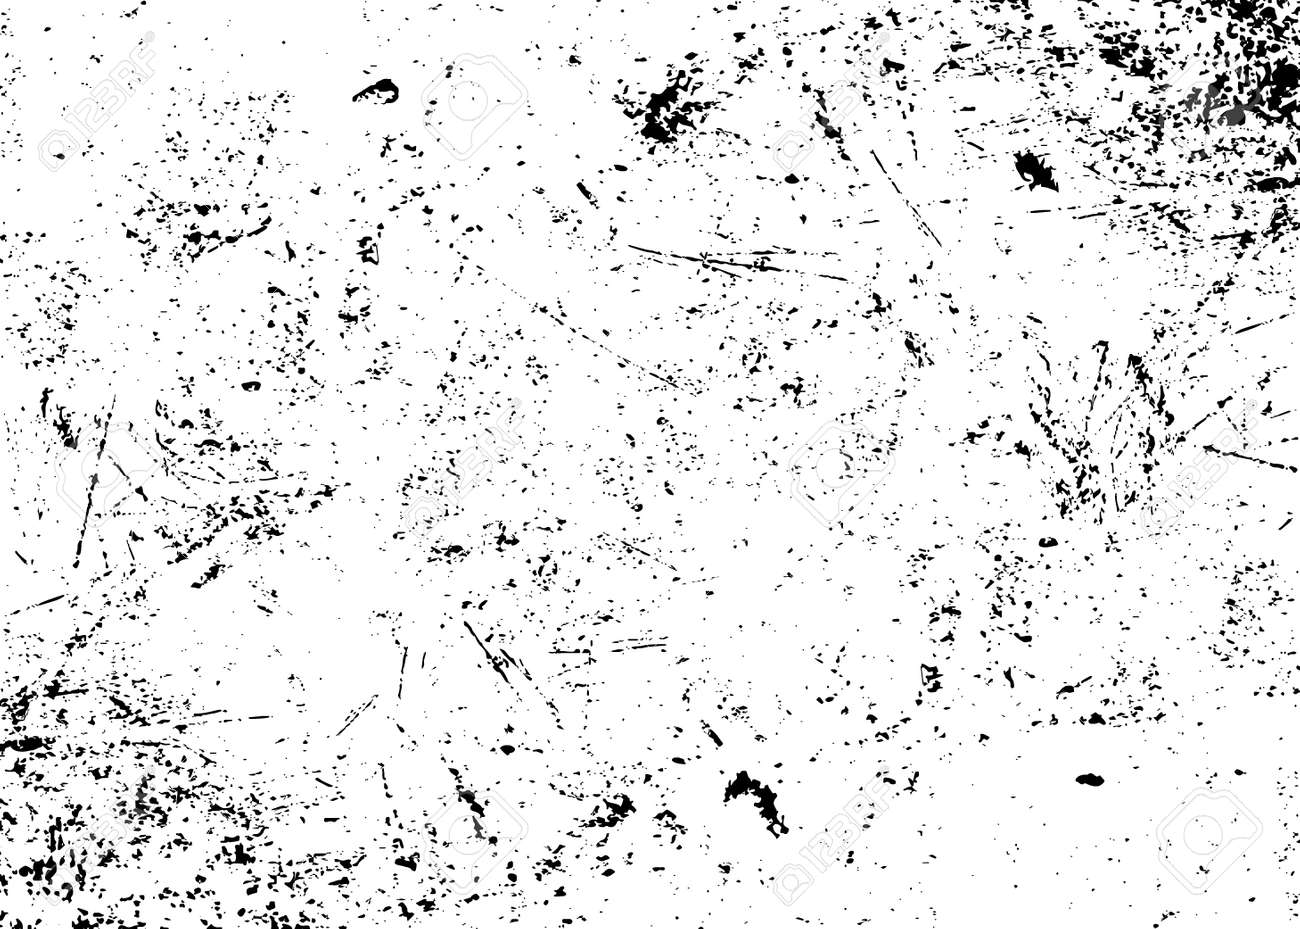 Grunge texture white and black. Sketch abstract to Create Distressed Effect. Overlay Distress grain monochrome design. Stylish modern background for different print products. Vector illustration - 52490394